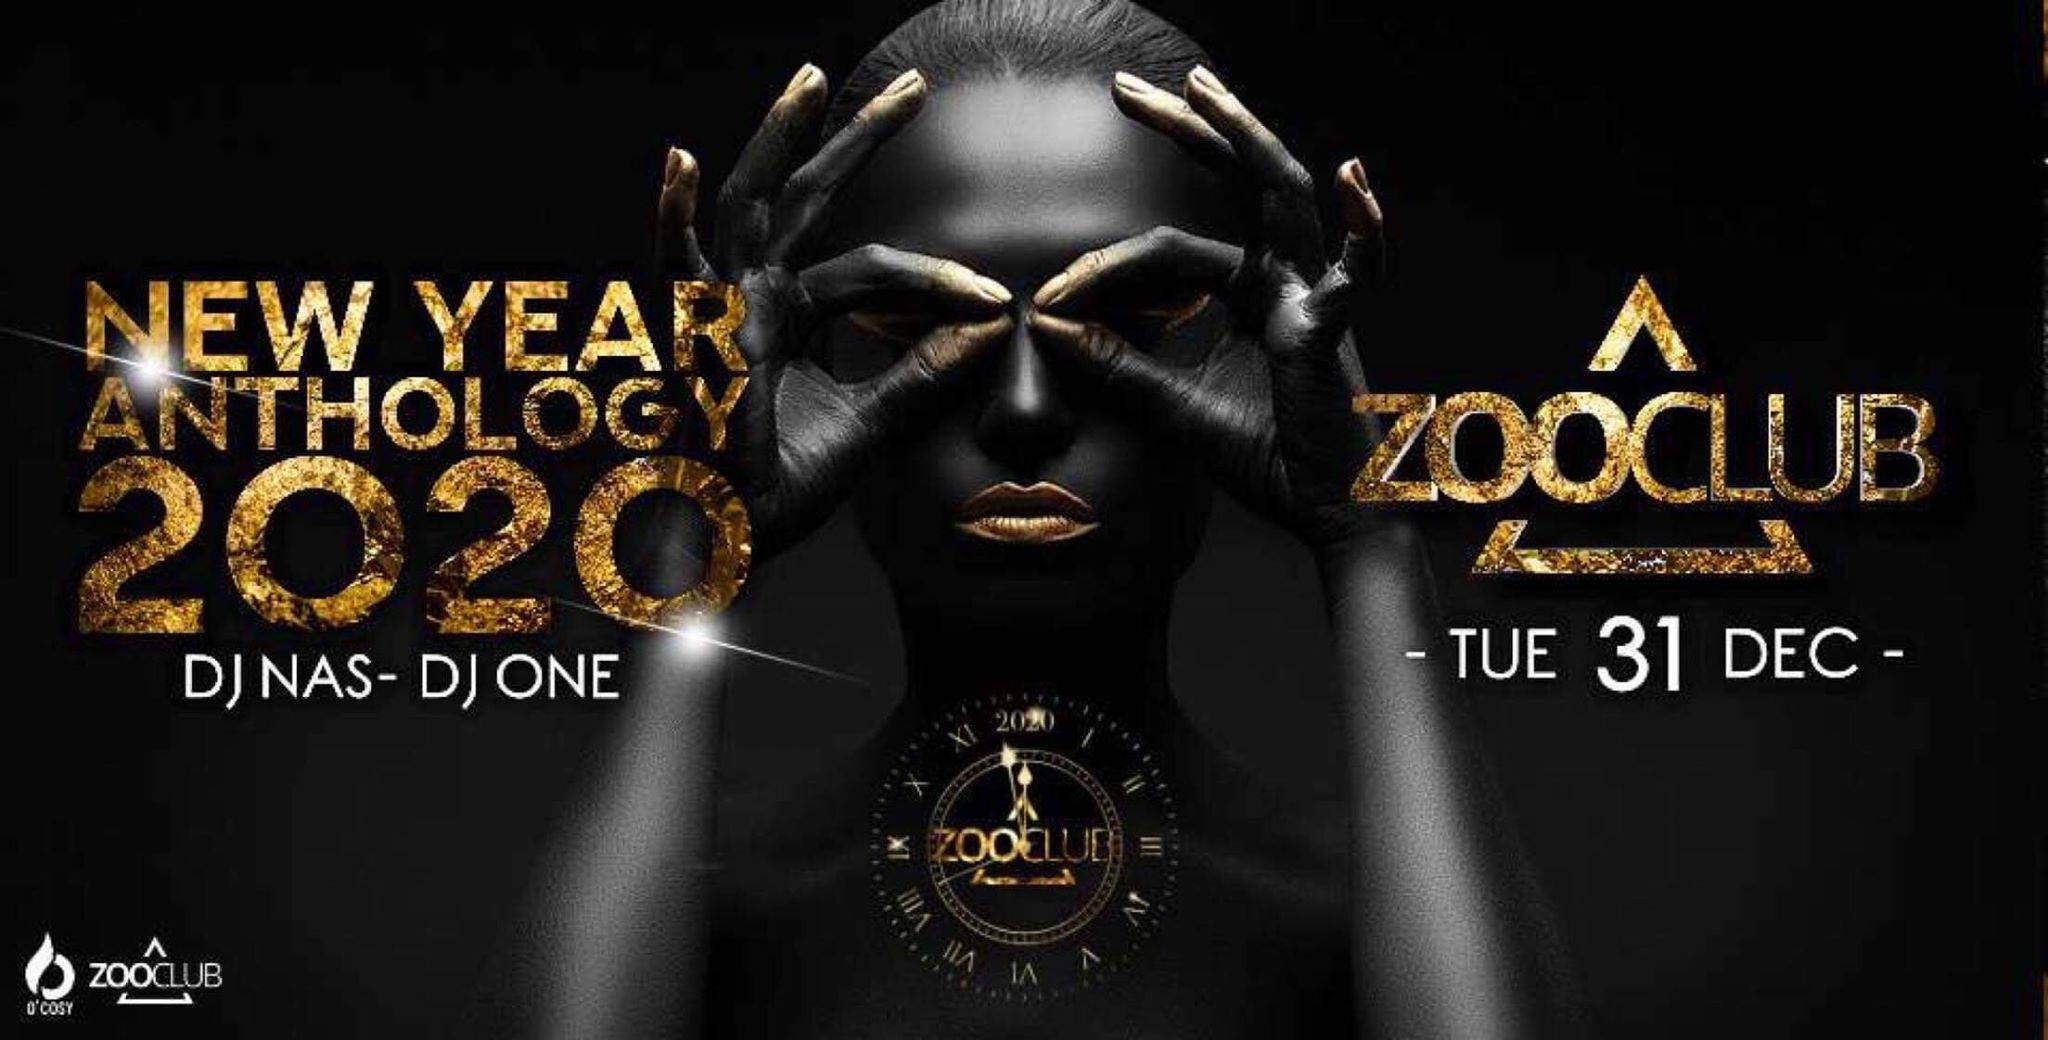 New Year Anthology 2020 au Zoo Club